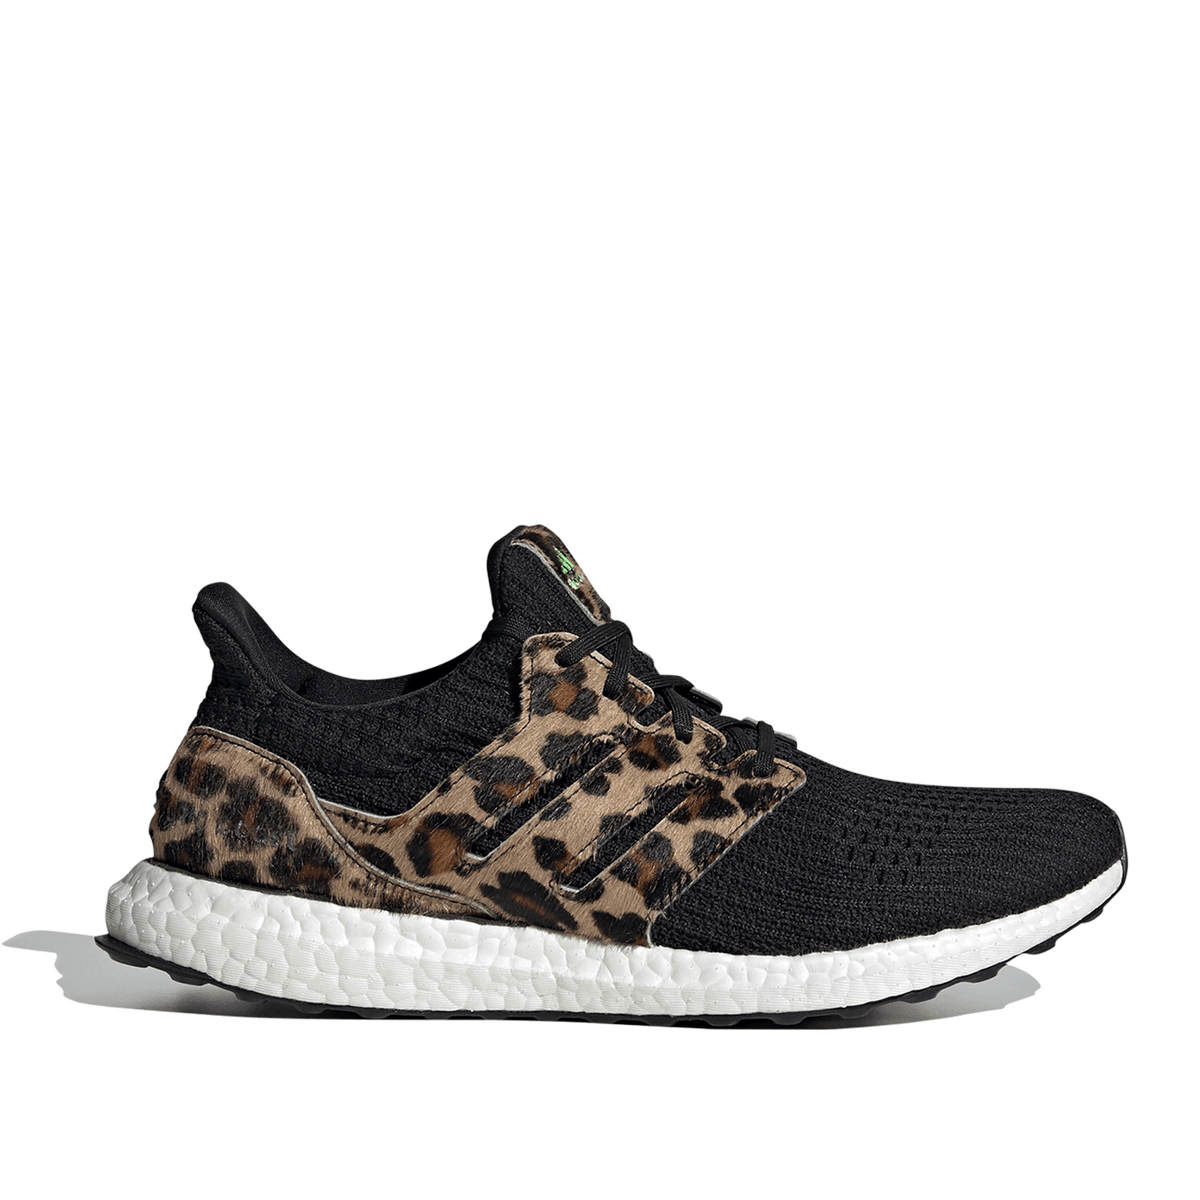 Ultraboost DNA - Leopard